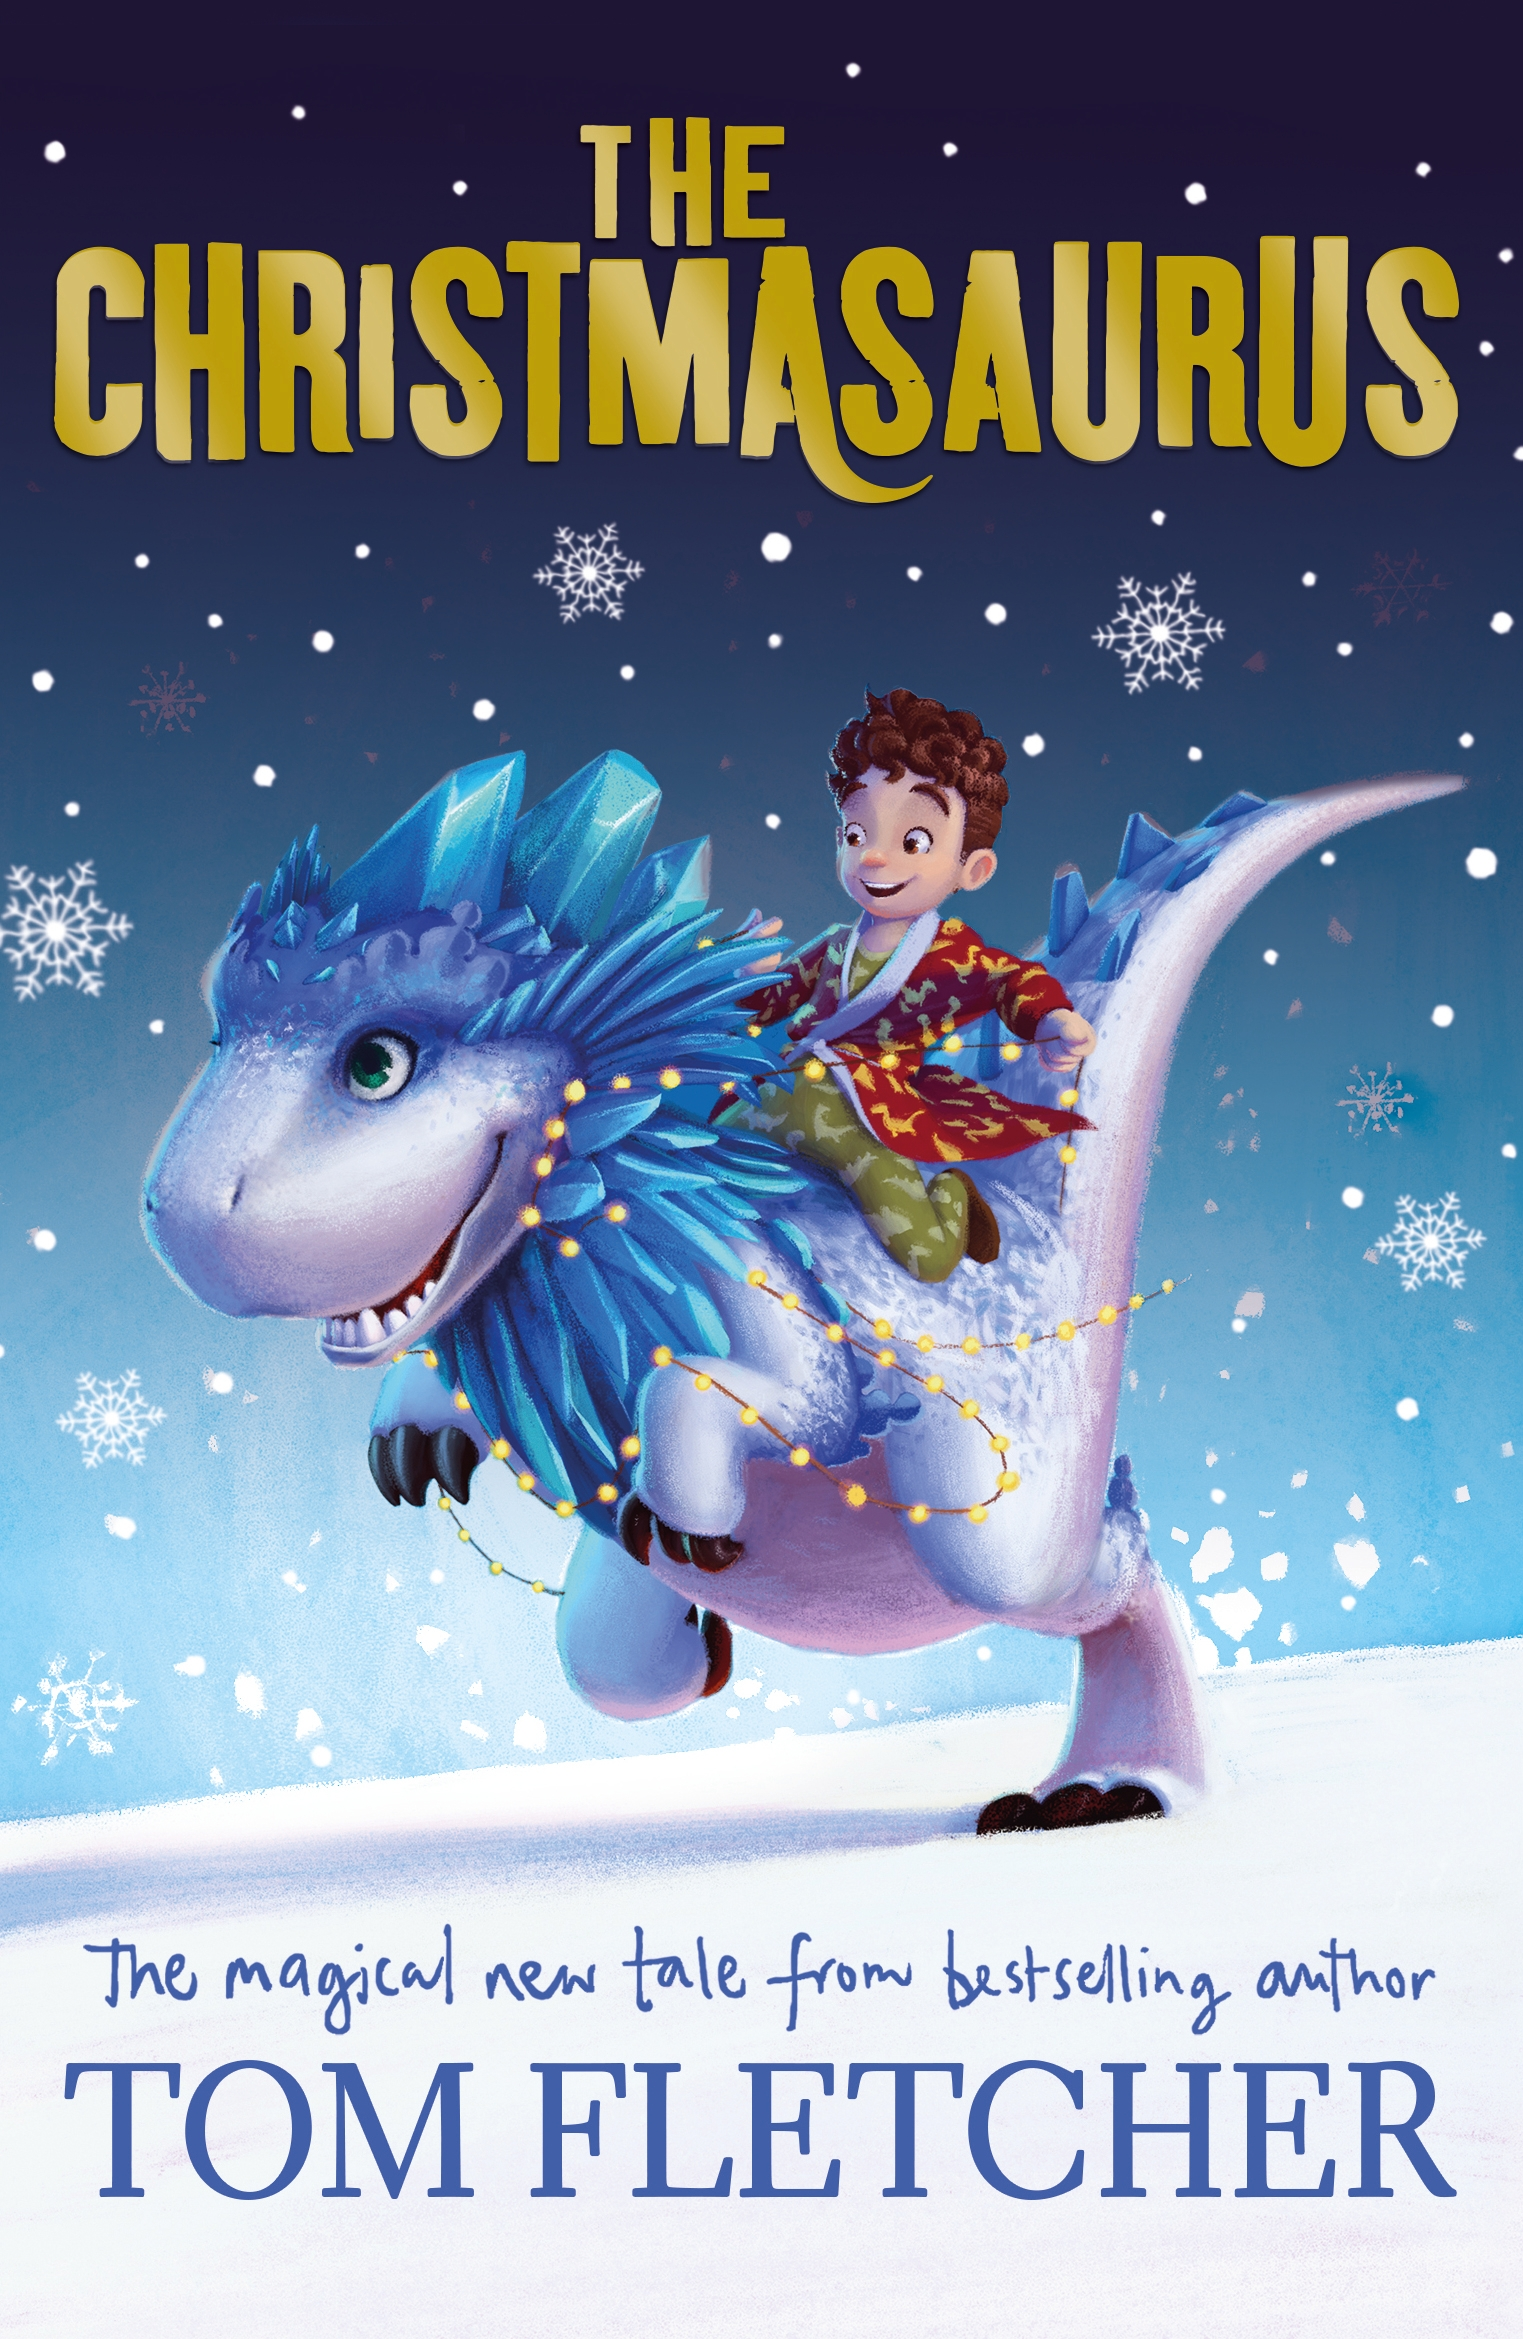 9780141373348 the christmasaurus pb  00000002